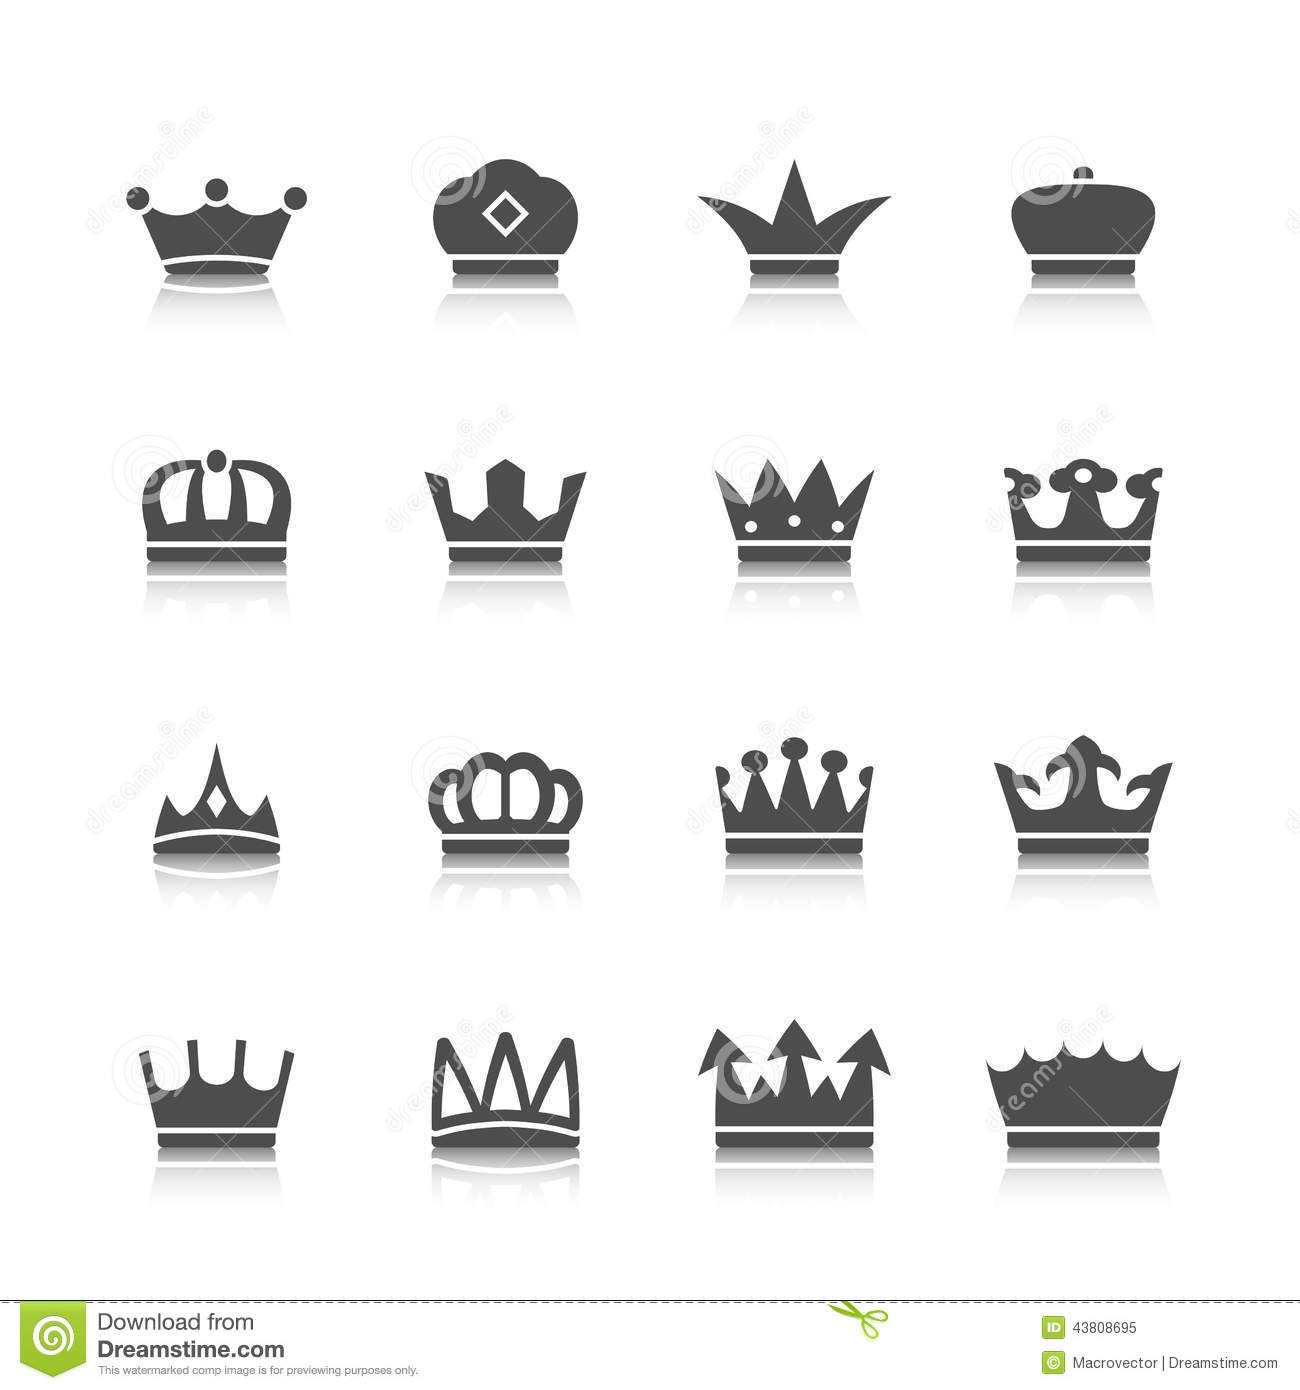 Ji cool characters symbols crown font symbol biocorpaavc Choice Image